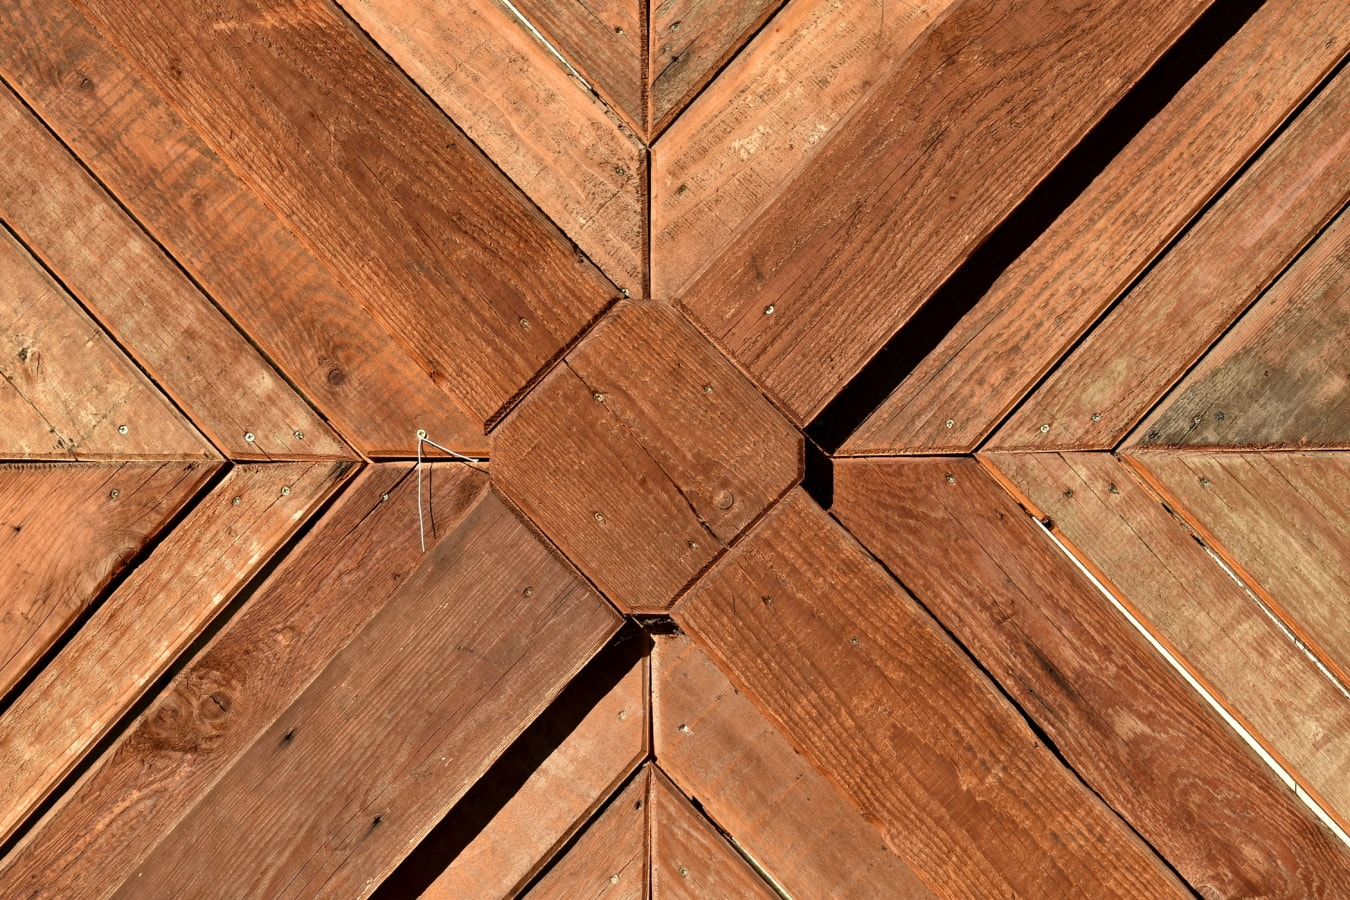 wood, rectangle, square, design, details, carpentry, material, timber, parquet, hardwood